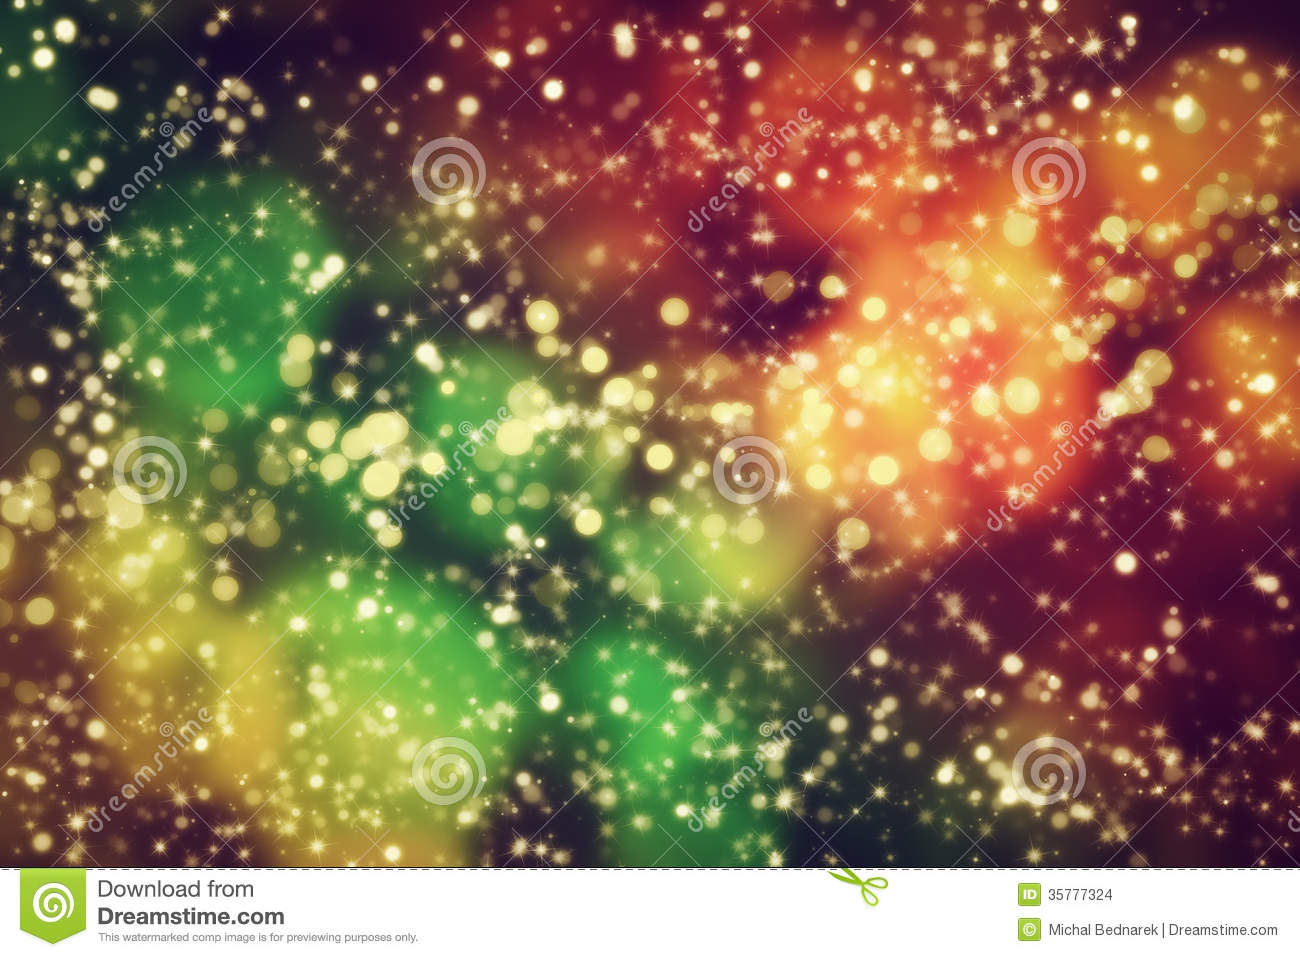 Galaxy, space abstract background.